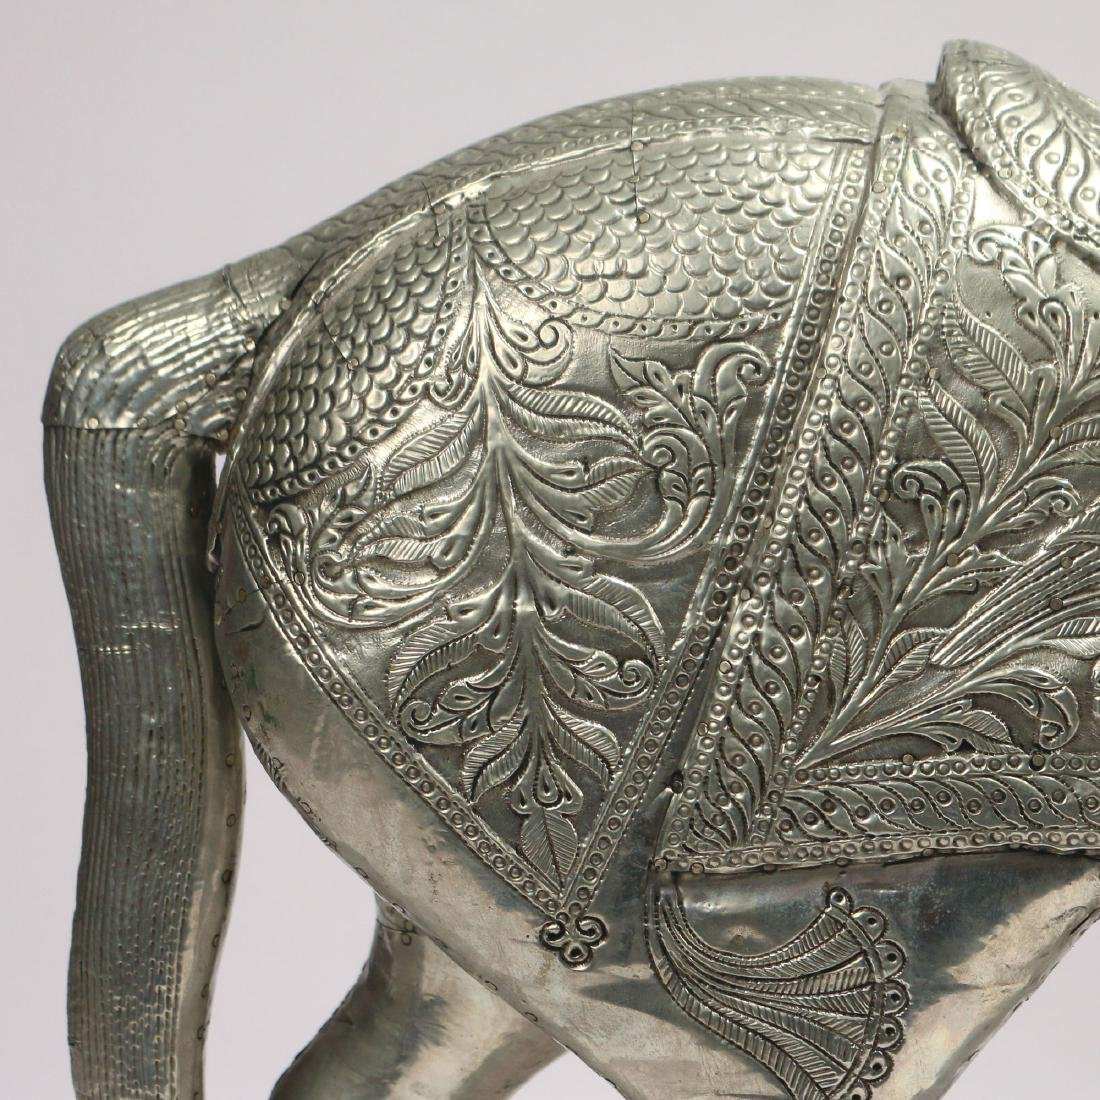 DAMASCUS SILVER FIGURE OF A HORSE - 5